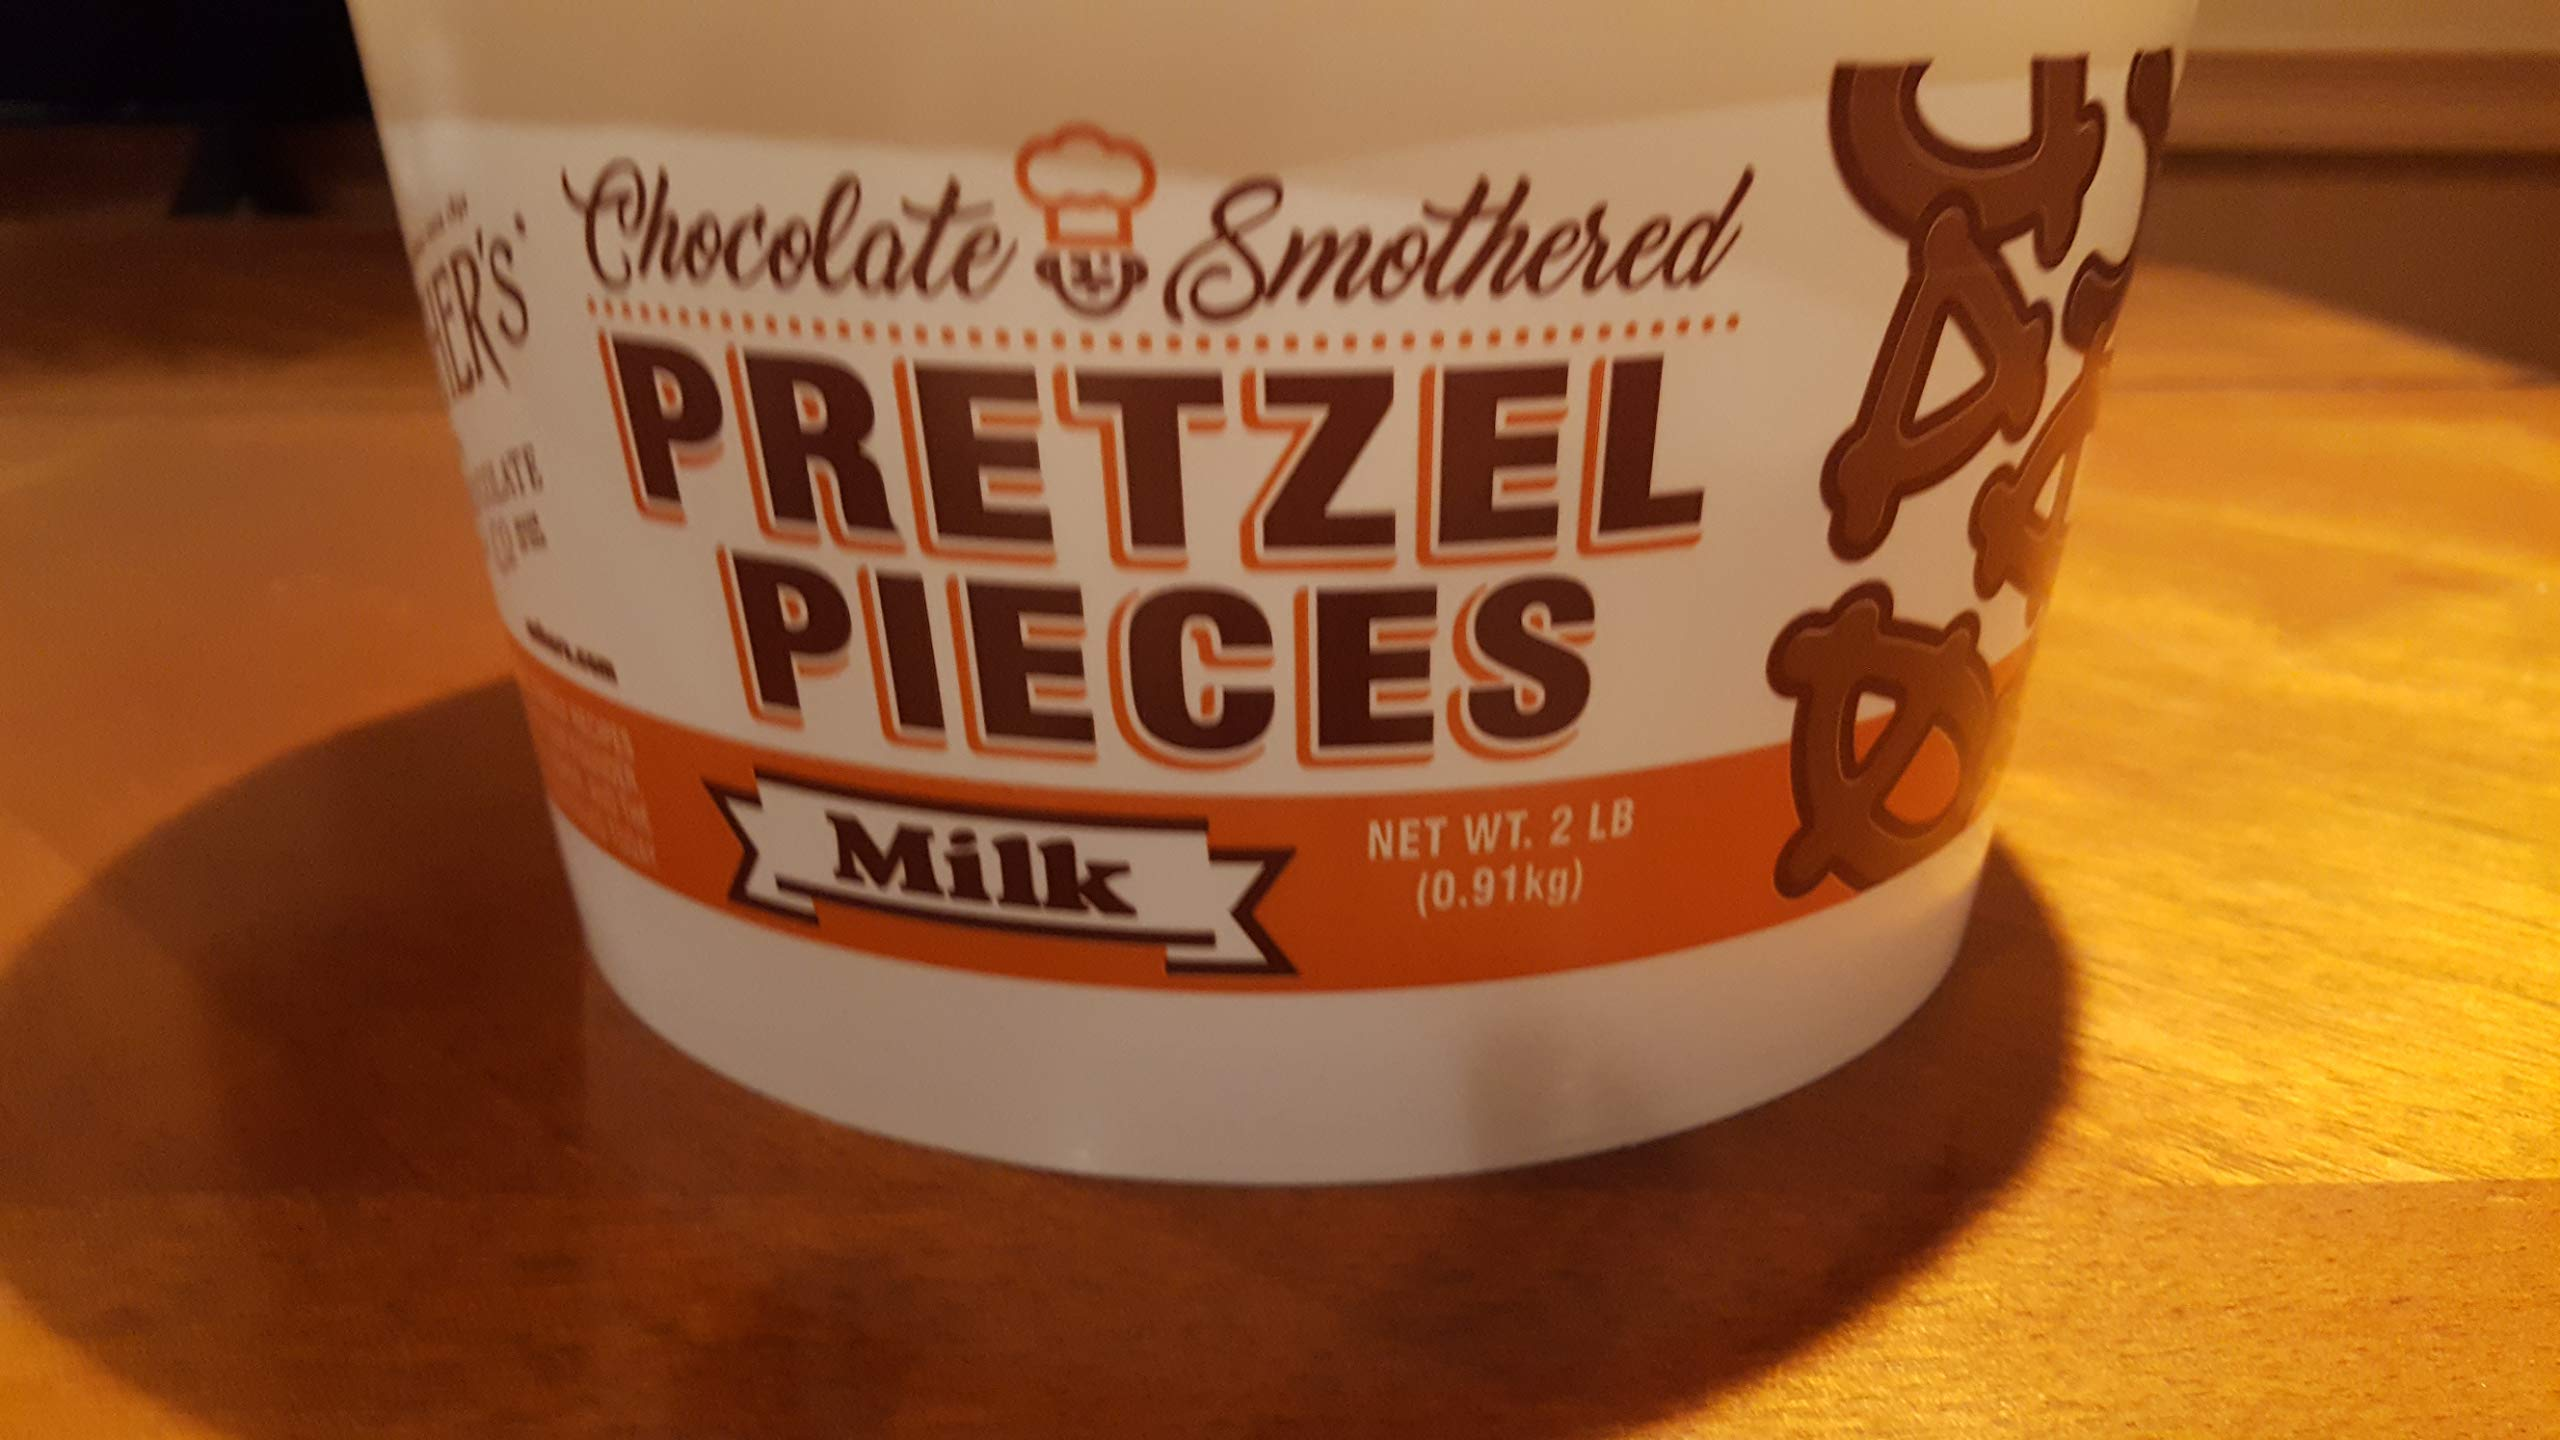 Ashers Milk Chocolate Pretzel Pieces, 2 Pound Plastic Tub by Ashers Chocolate